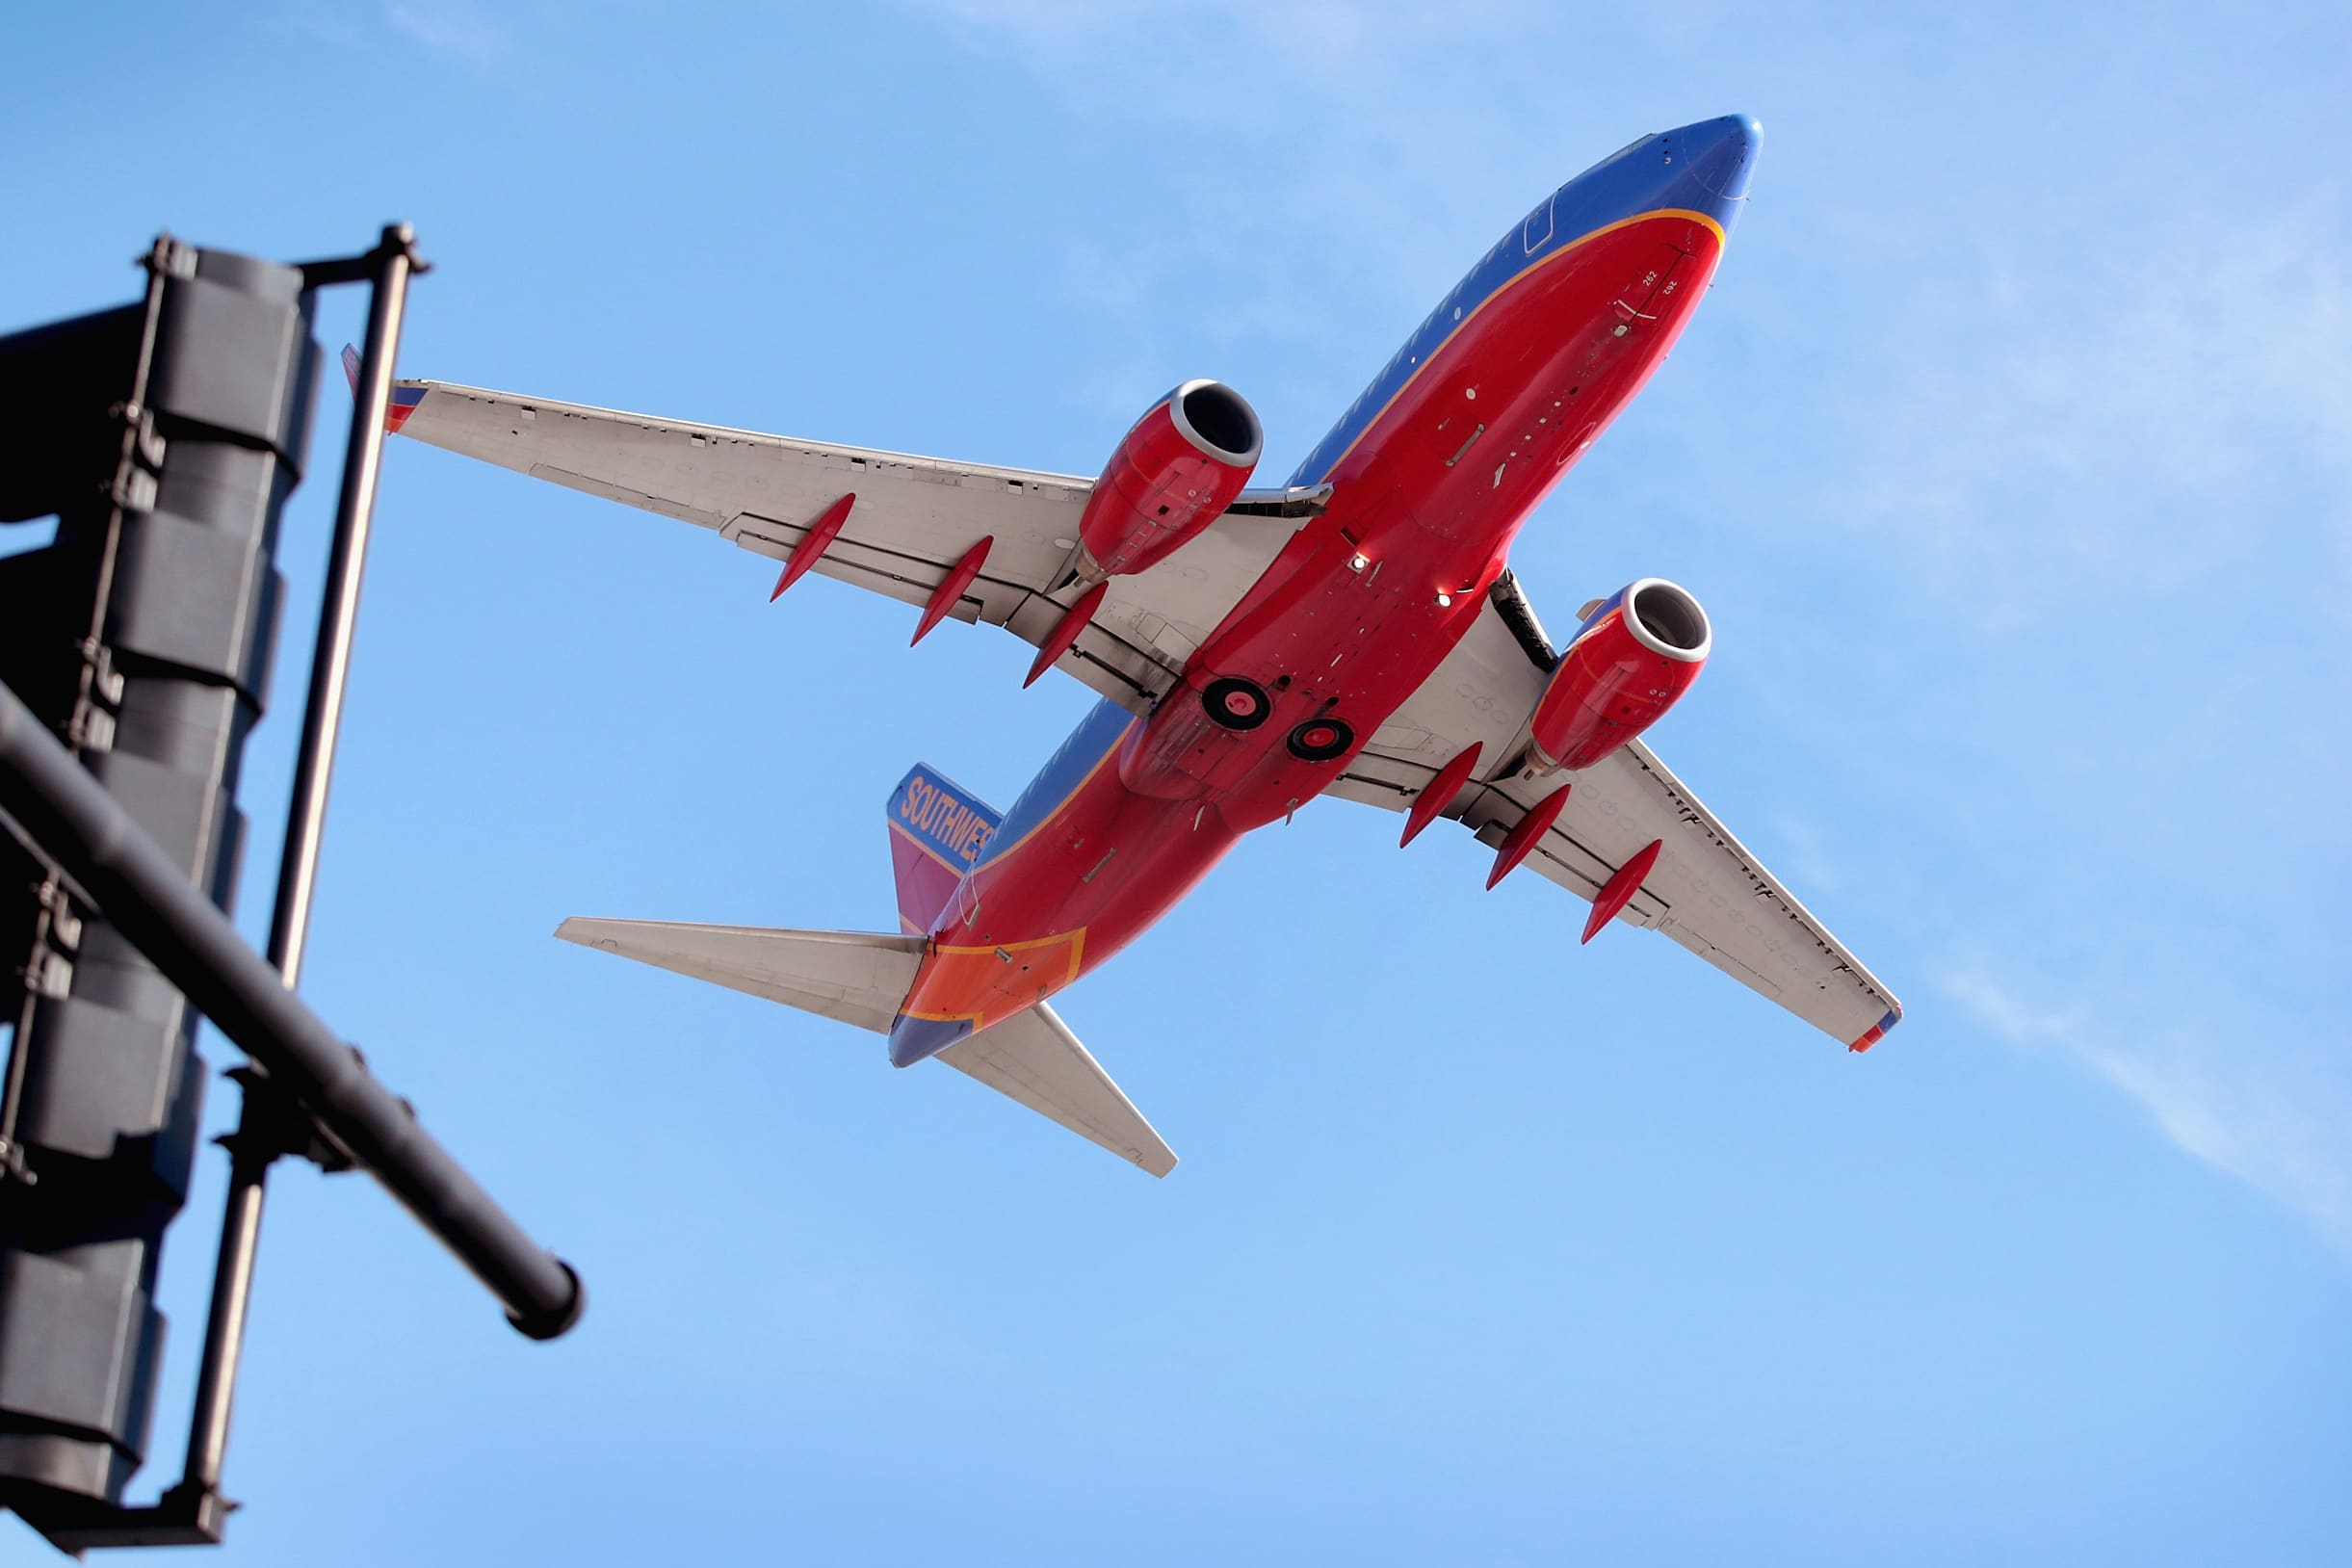 Southwest reaches deal with Boeing over 737 Max, plans to share $125 million with employees